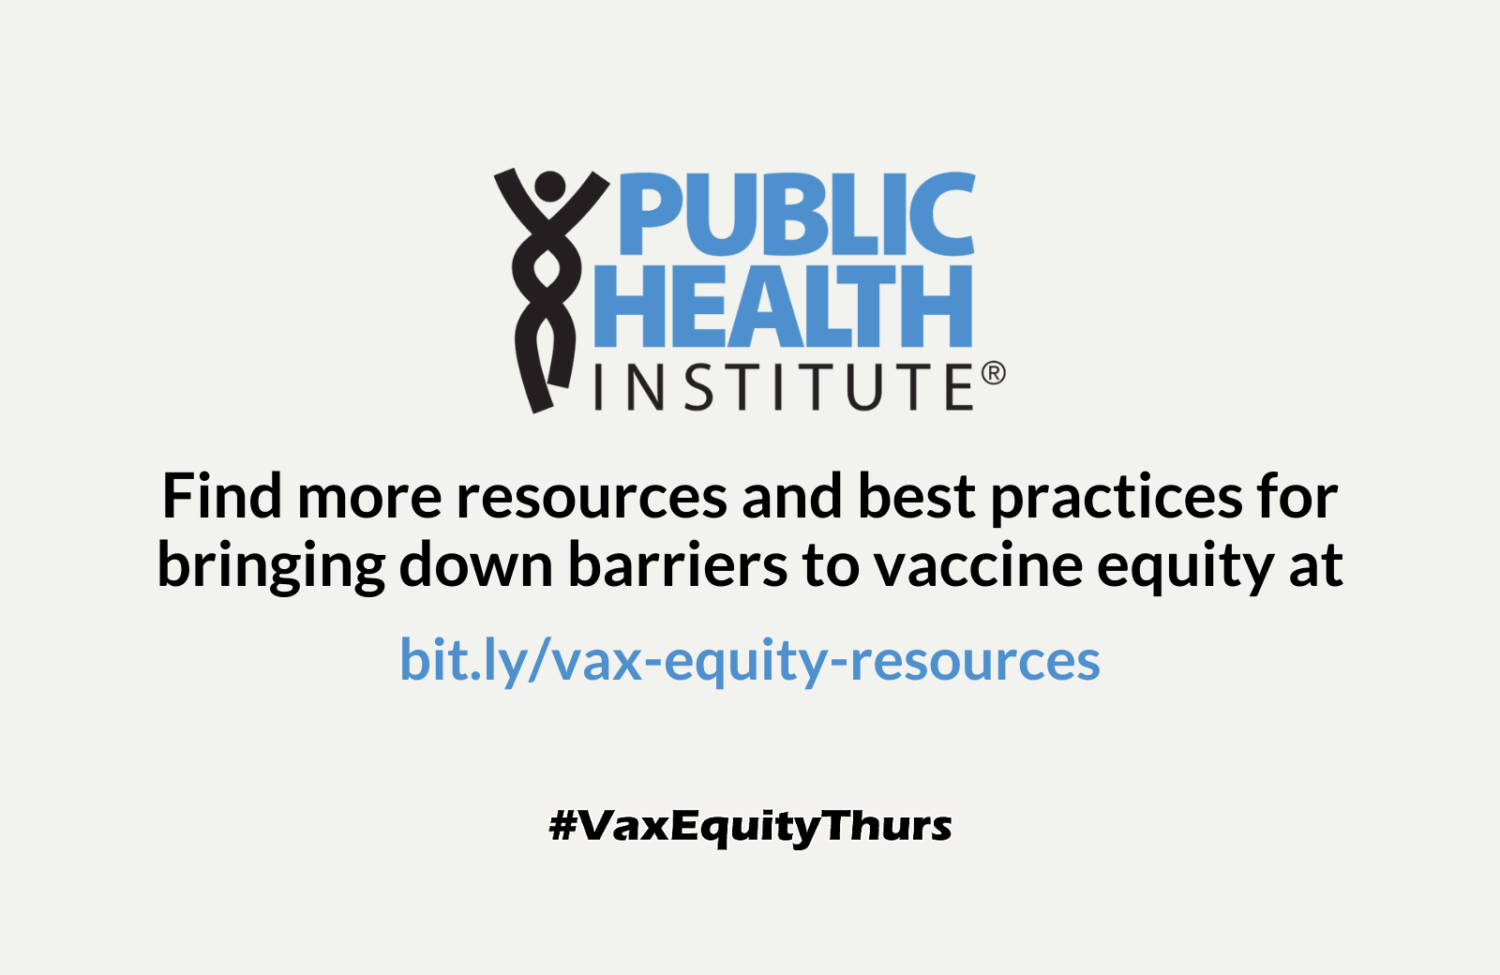 Find more vaccine equity tips on PHI's website